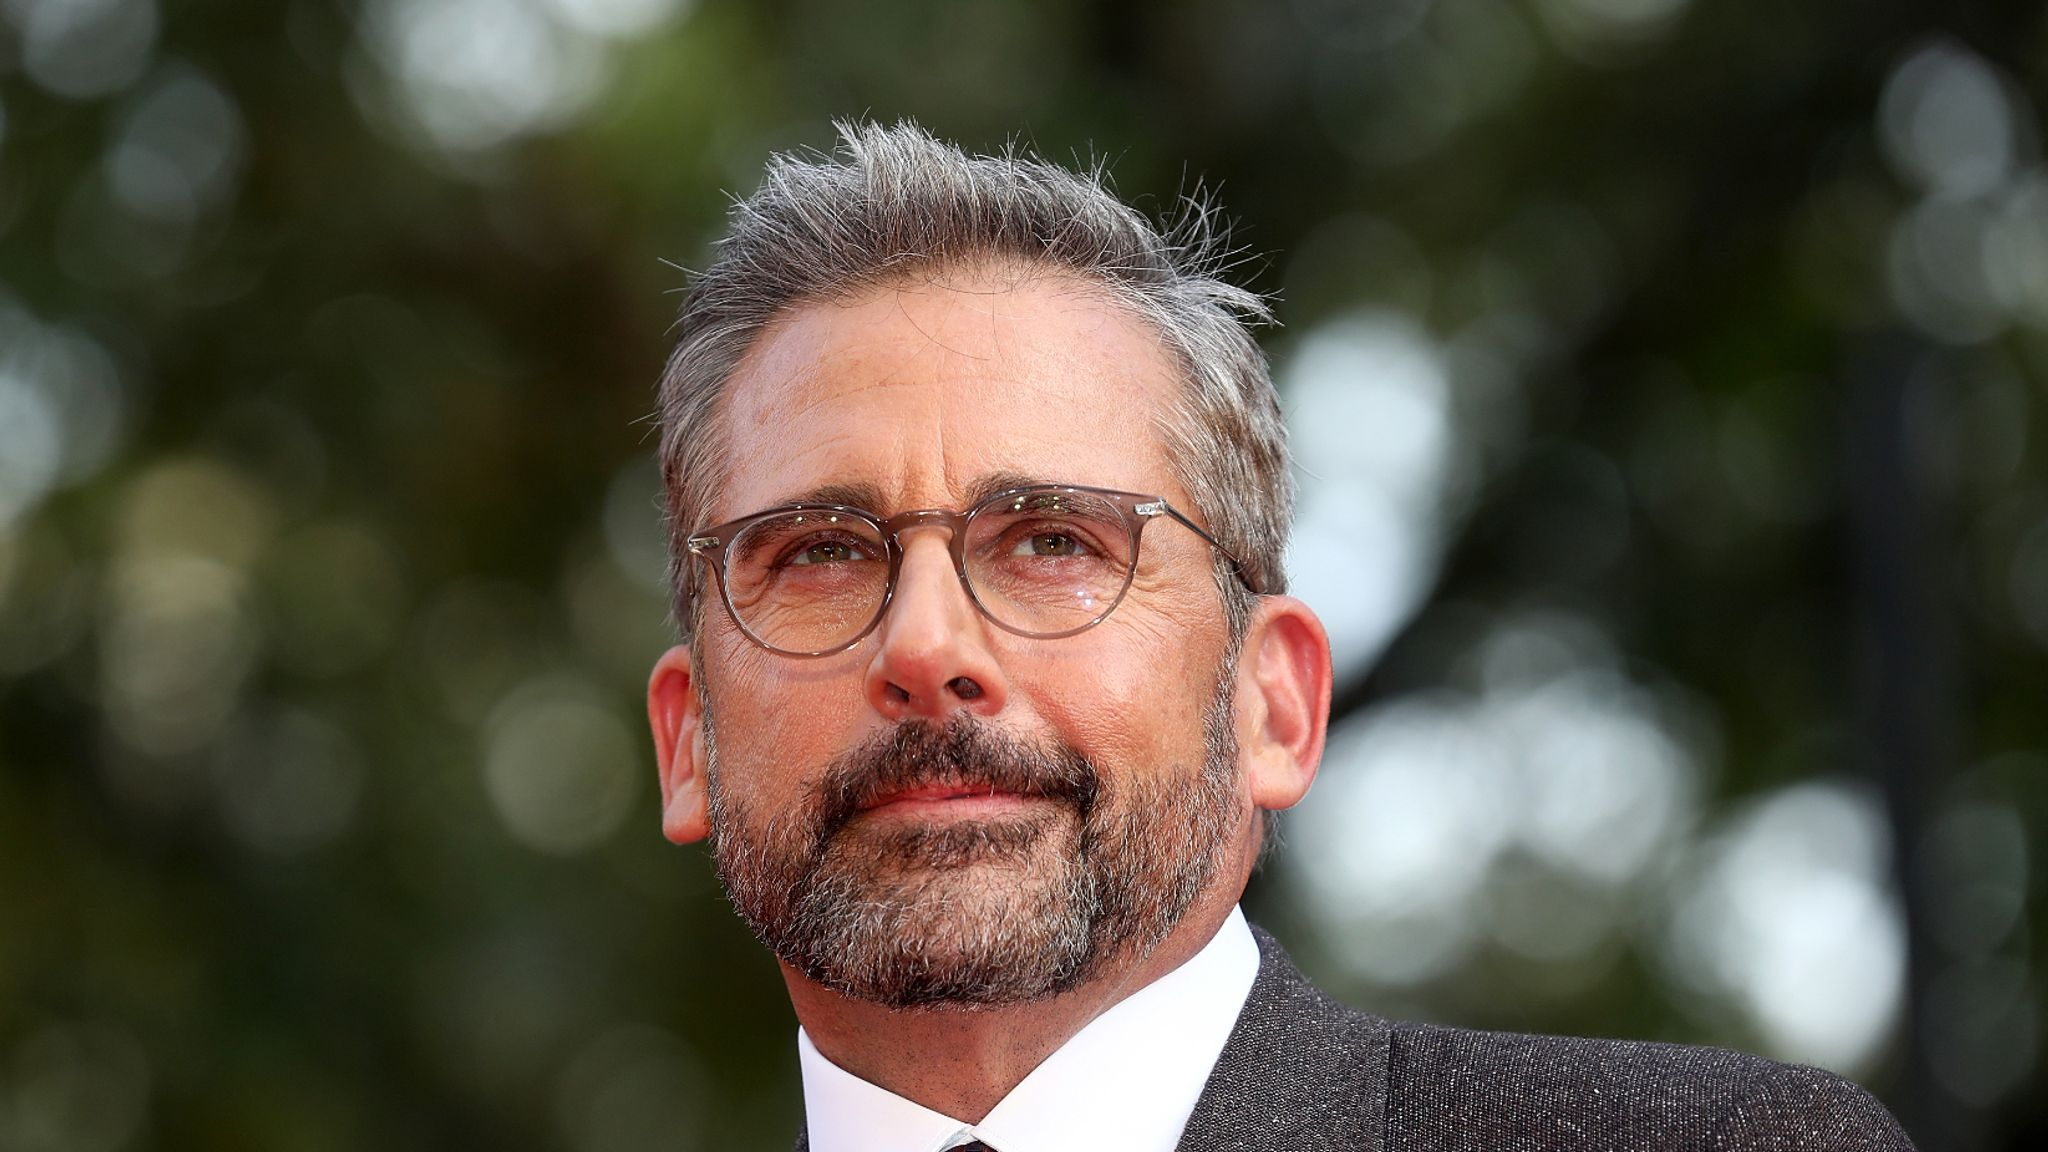 """LONDON, ENGLAND - OCTOBER 13: Steve Carell attends the UK Premiere of """"Beautiful Boy"""" & Headline gala during the 62nd BFI London Film Festival on October 13, 2018 in London, England. (Photo by Tim P. Whitby/Tim P. Whitby/Getty Images for BFI)"""